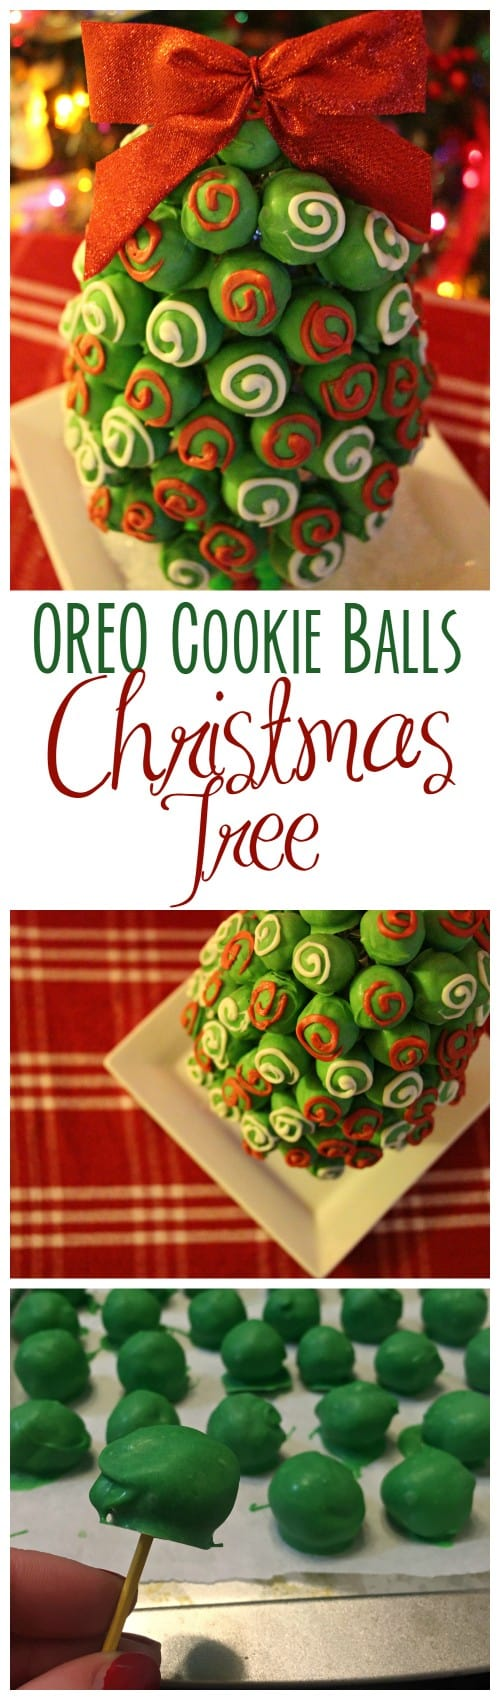 OREO-Cookie-Balls-Christmas-Tree-Collage